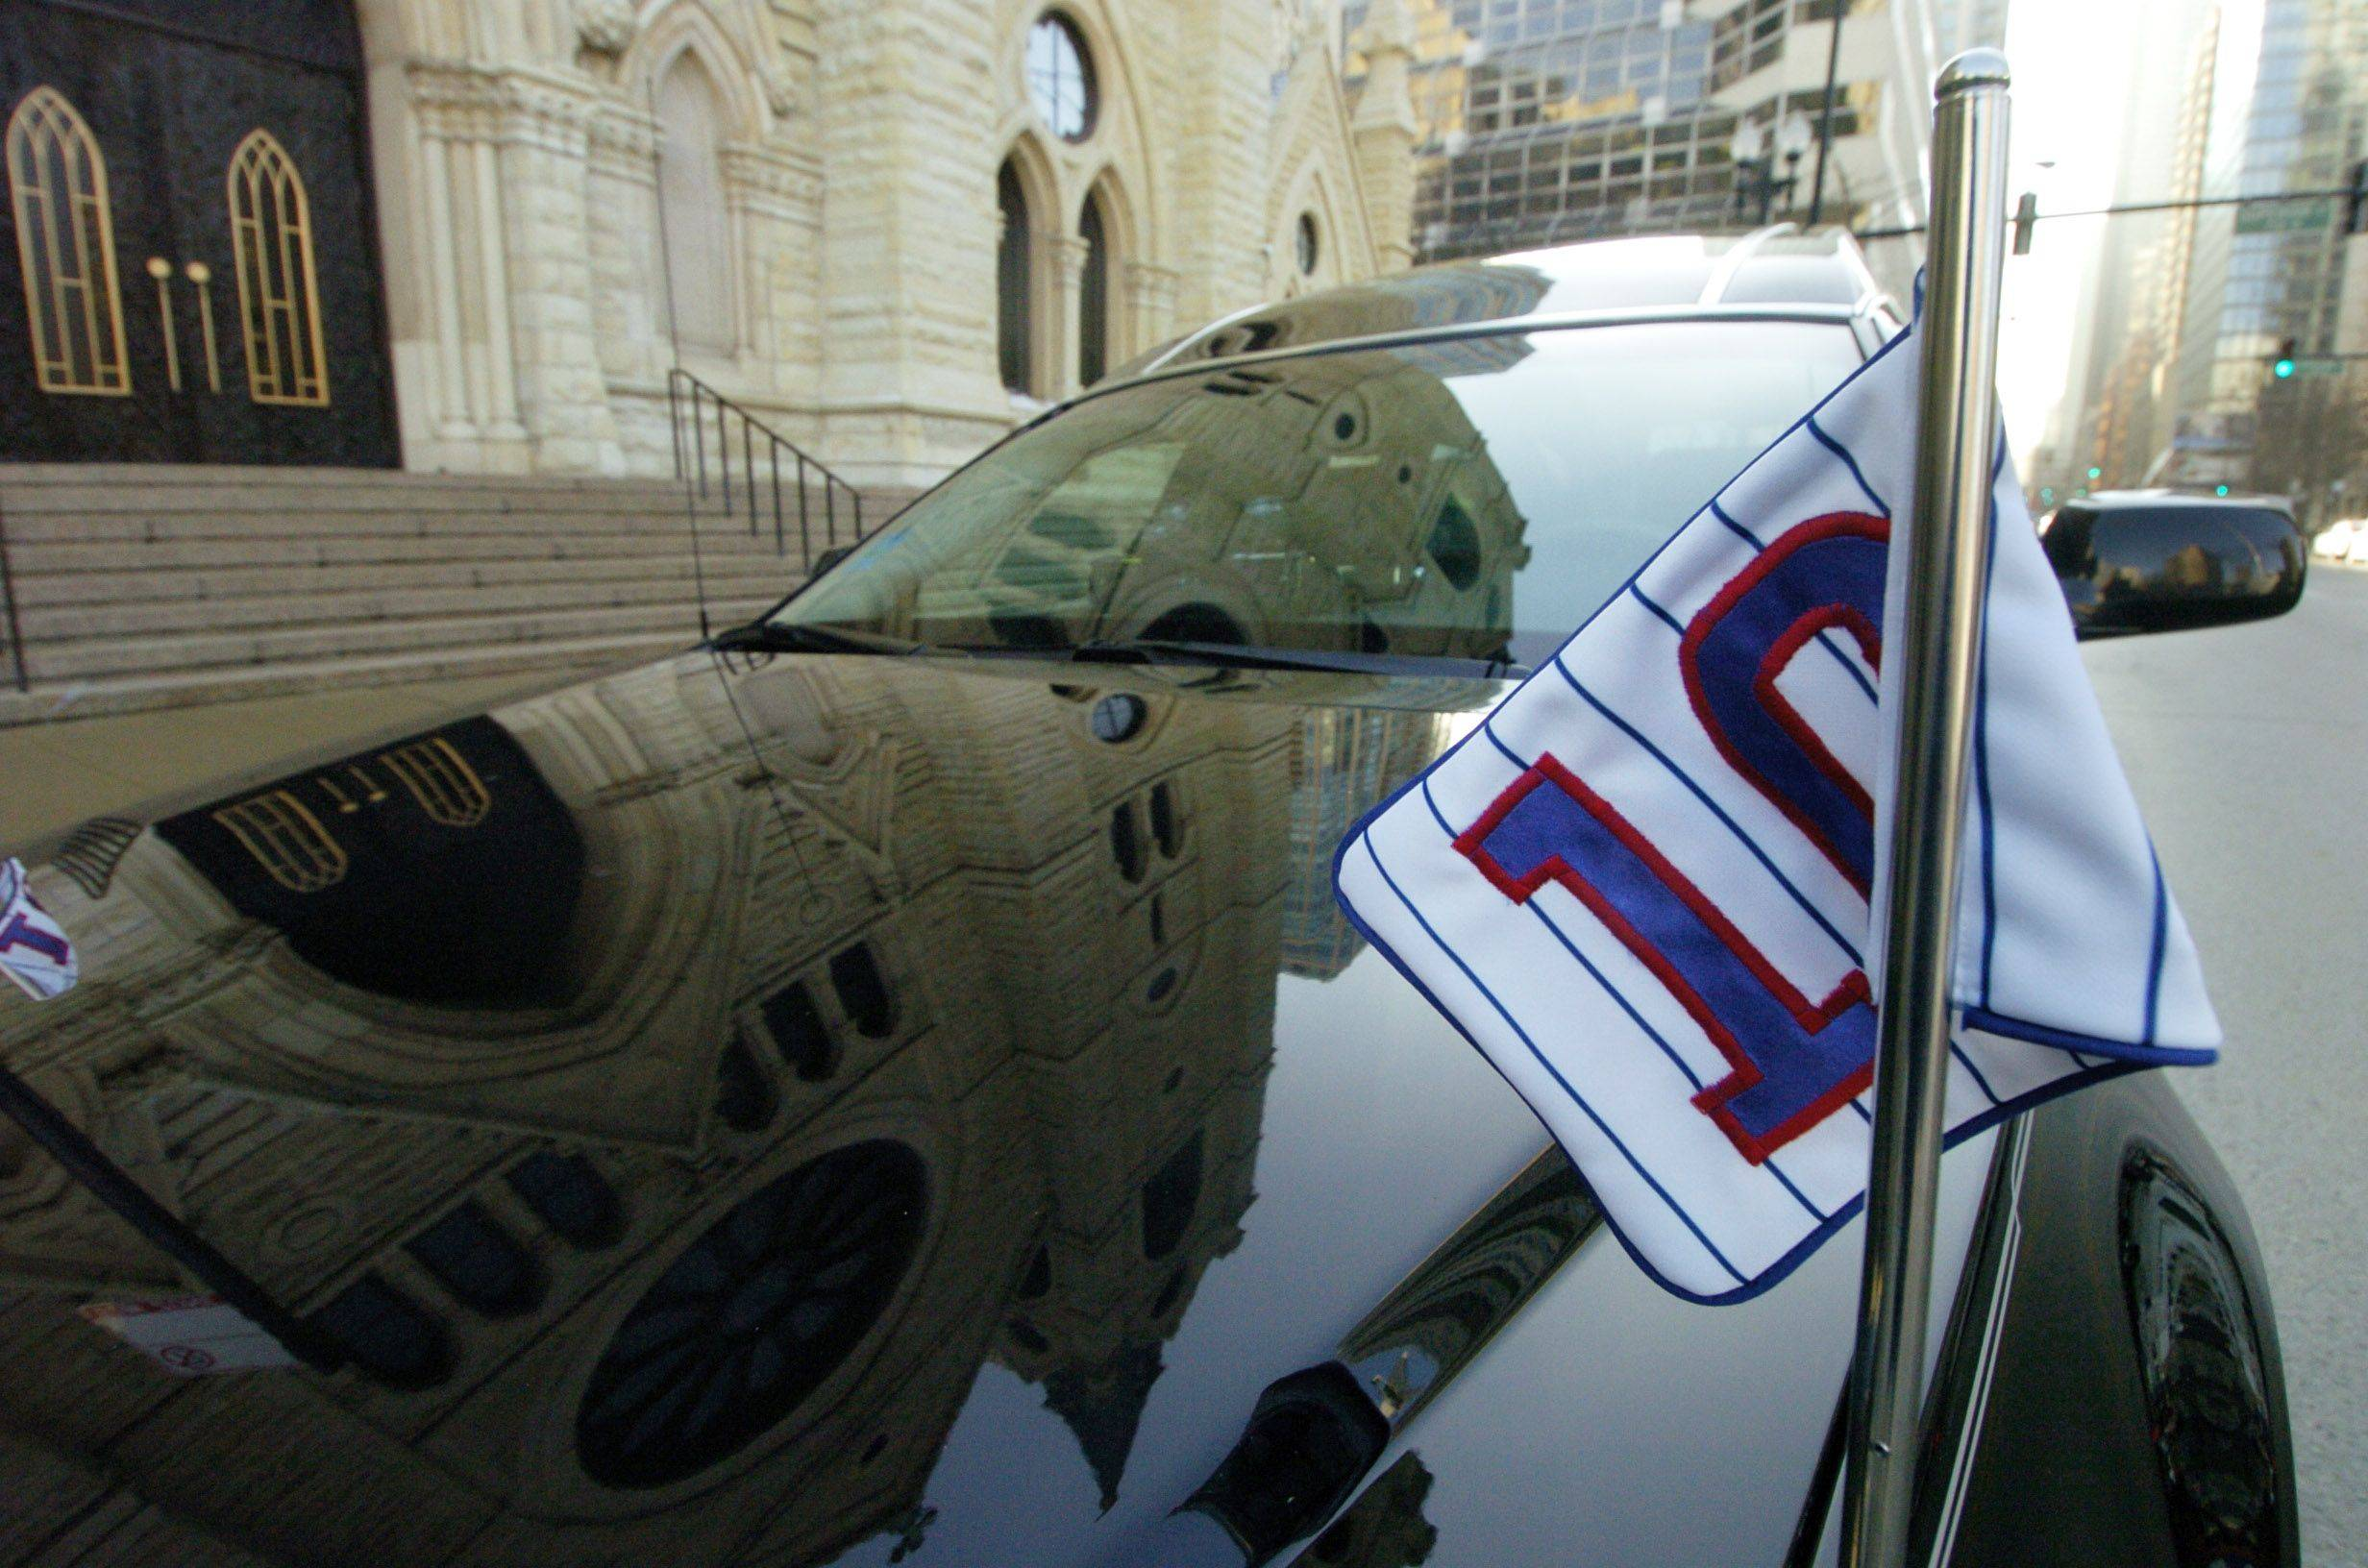 Number 10 flags adorn the hearse during Ron Santo's funeral at Holy Name Cathedral in Chicago on Friday.